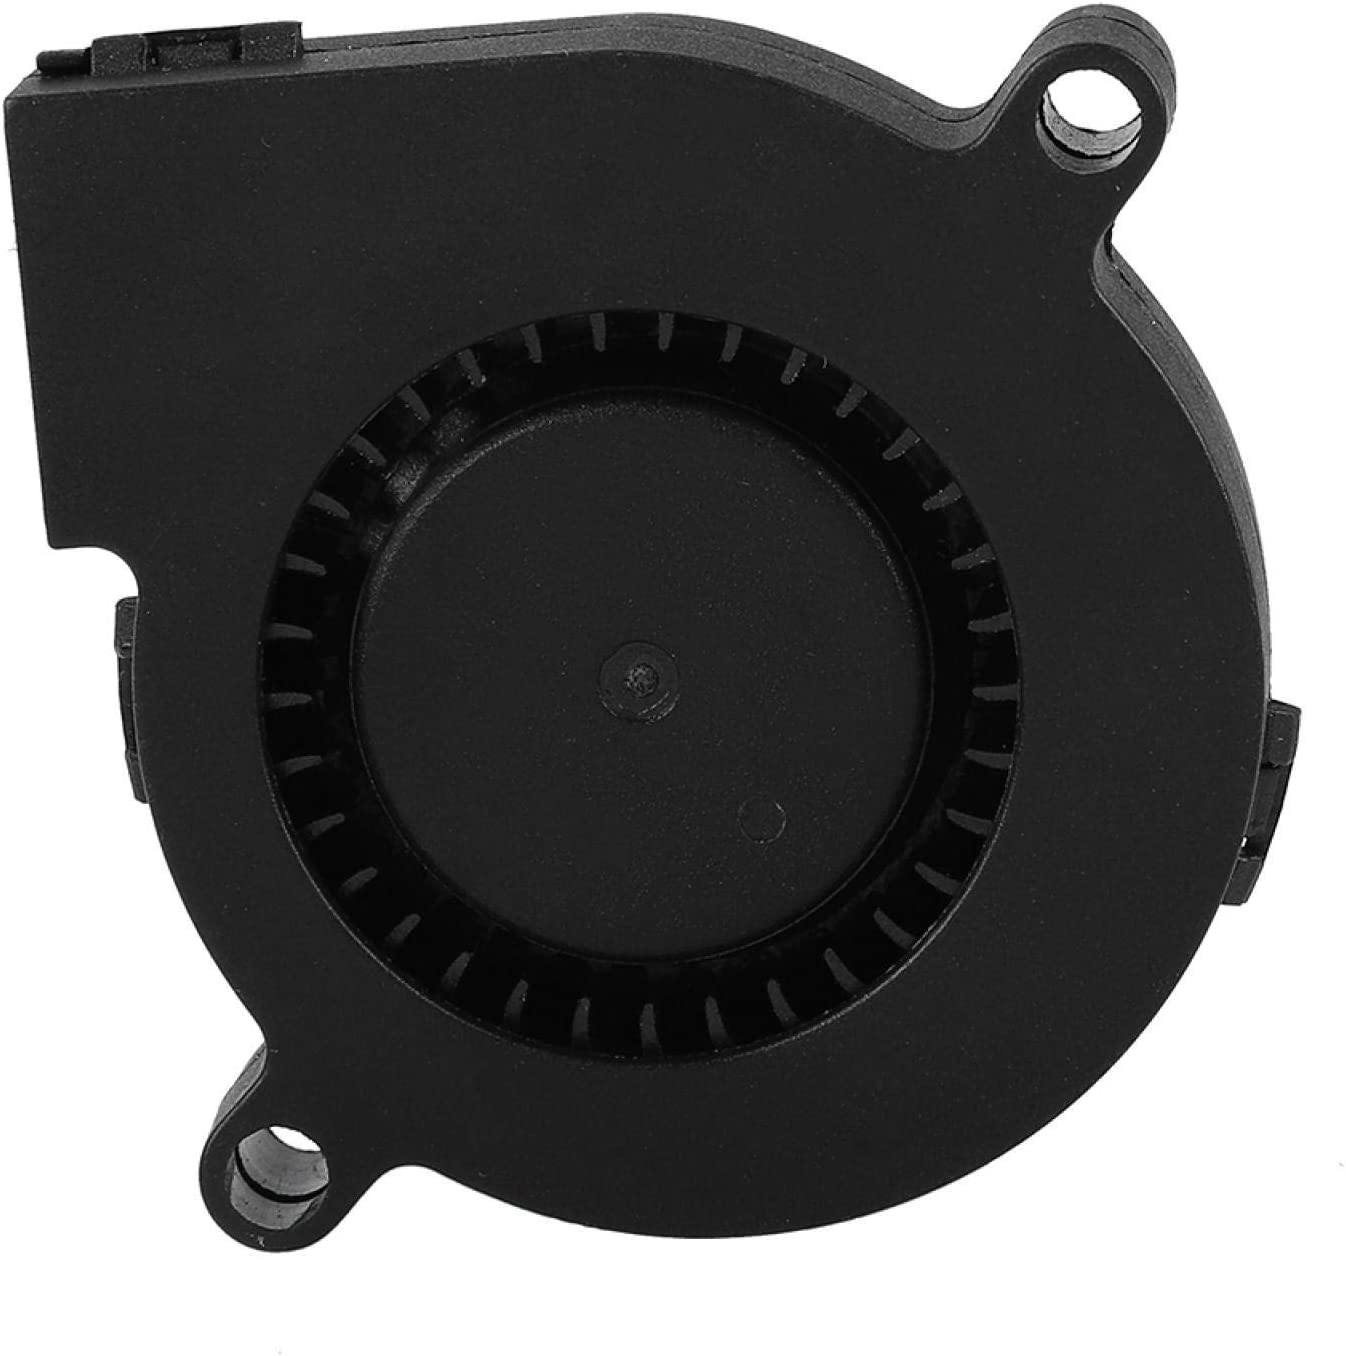 Mxzzand Specially Finally popular brand Brand new Designed Cooling Fan Accessorie for 3D Printer